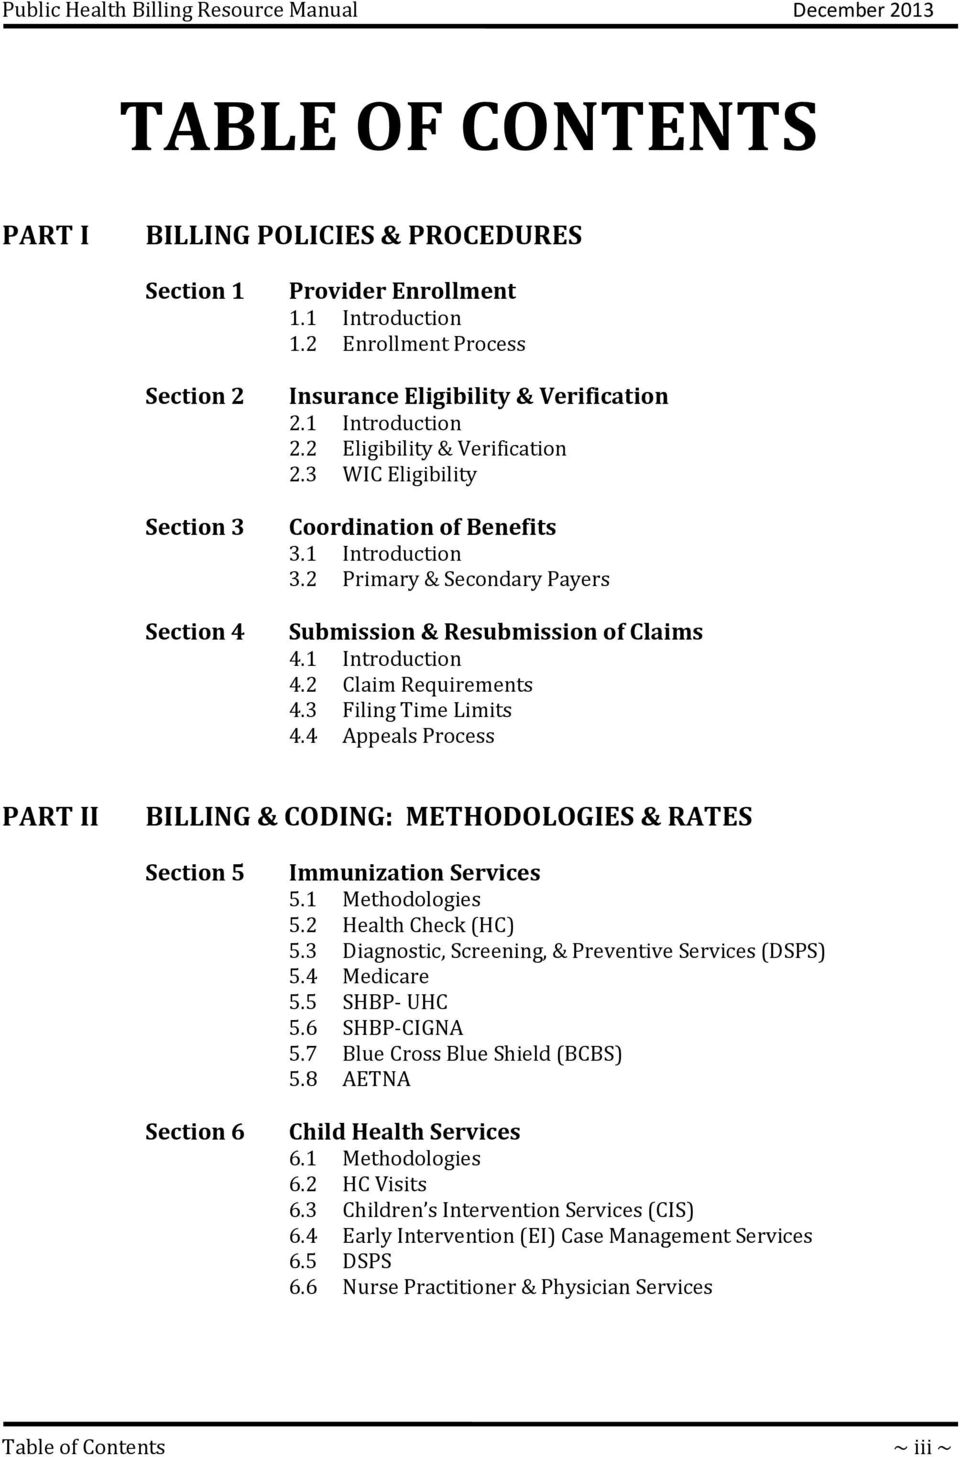 billing resource manual pdf rh docplayer net Pediatric Immunizations Pediatric Vaccines Info